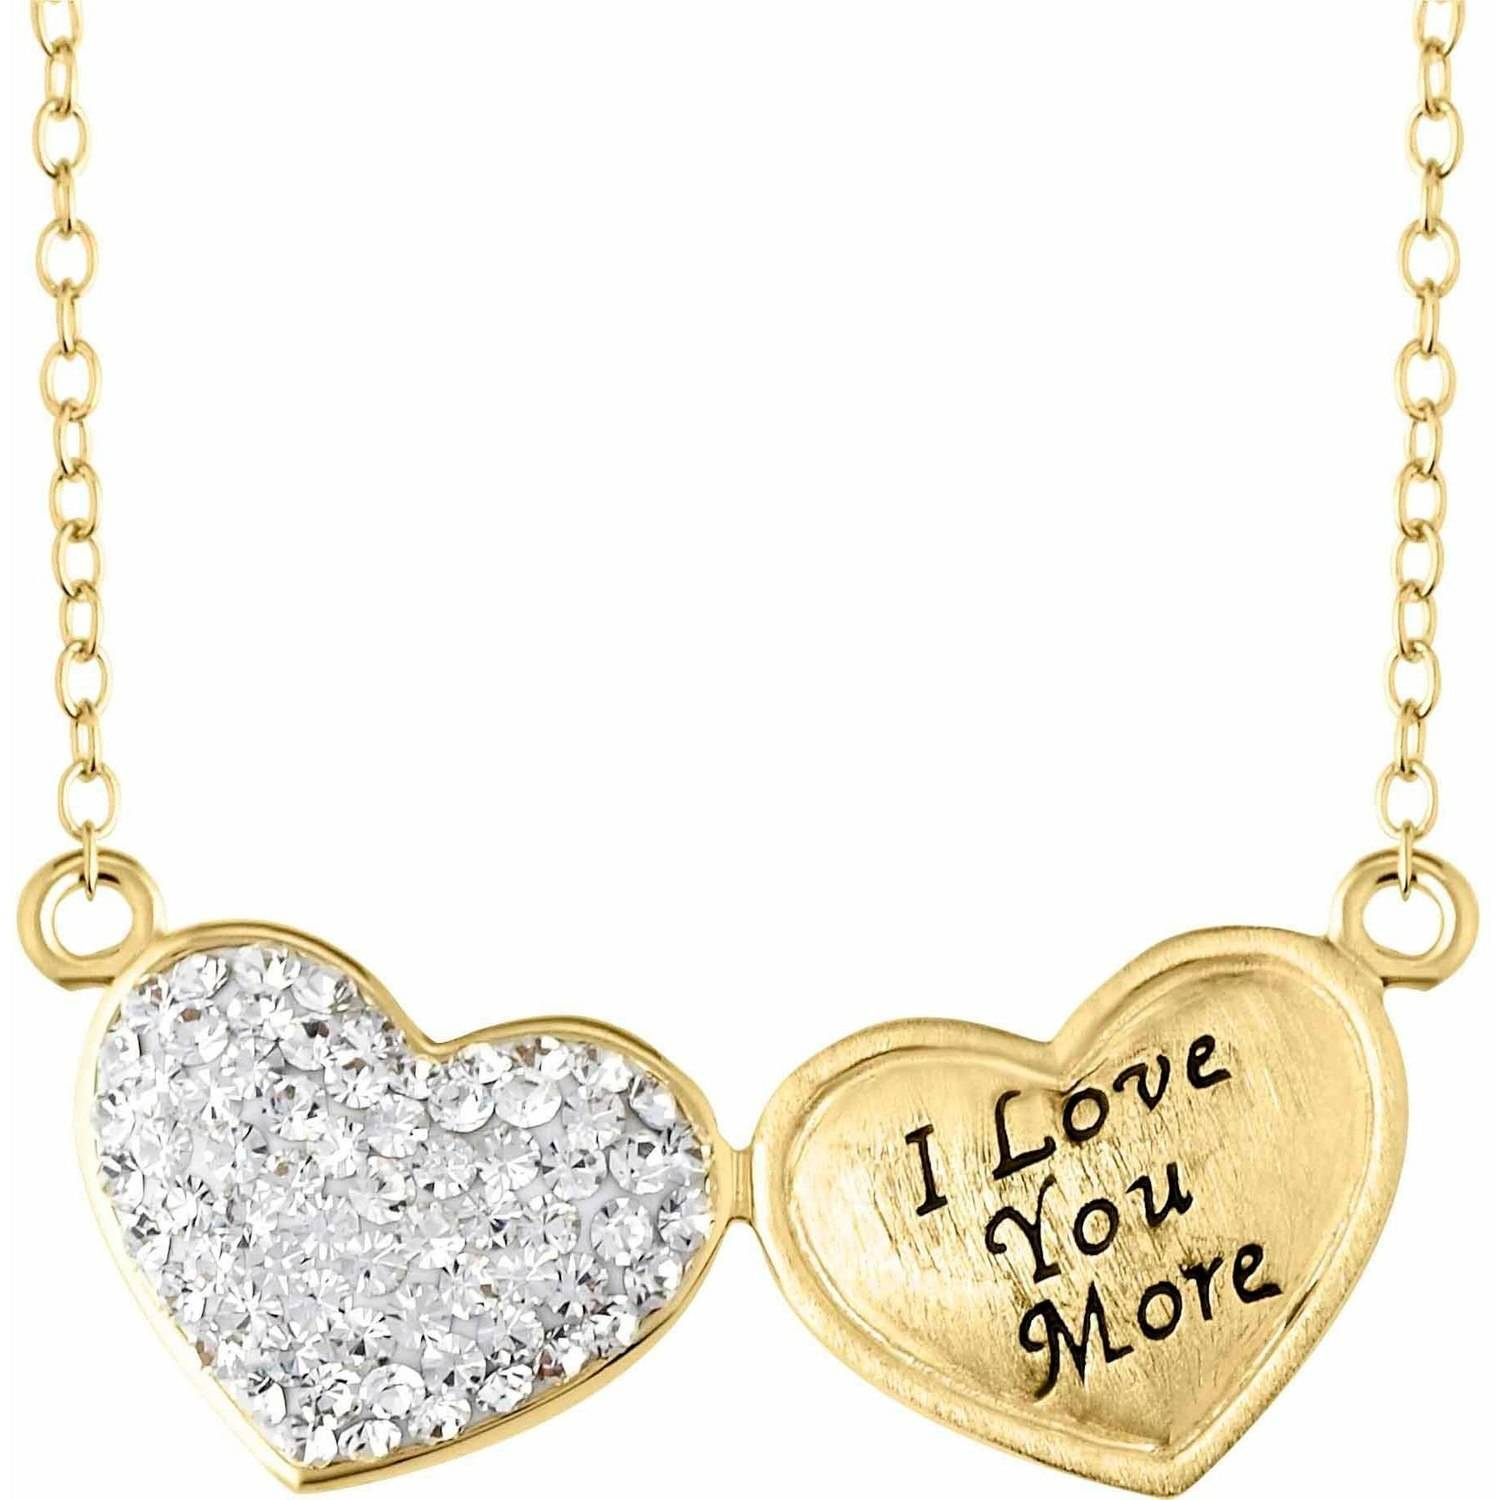 Crystaluxe Engraved Double Heart Necklace With Swarovski Crystals In 18kt  Gold Plated Sterling Silver   Walmart.com